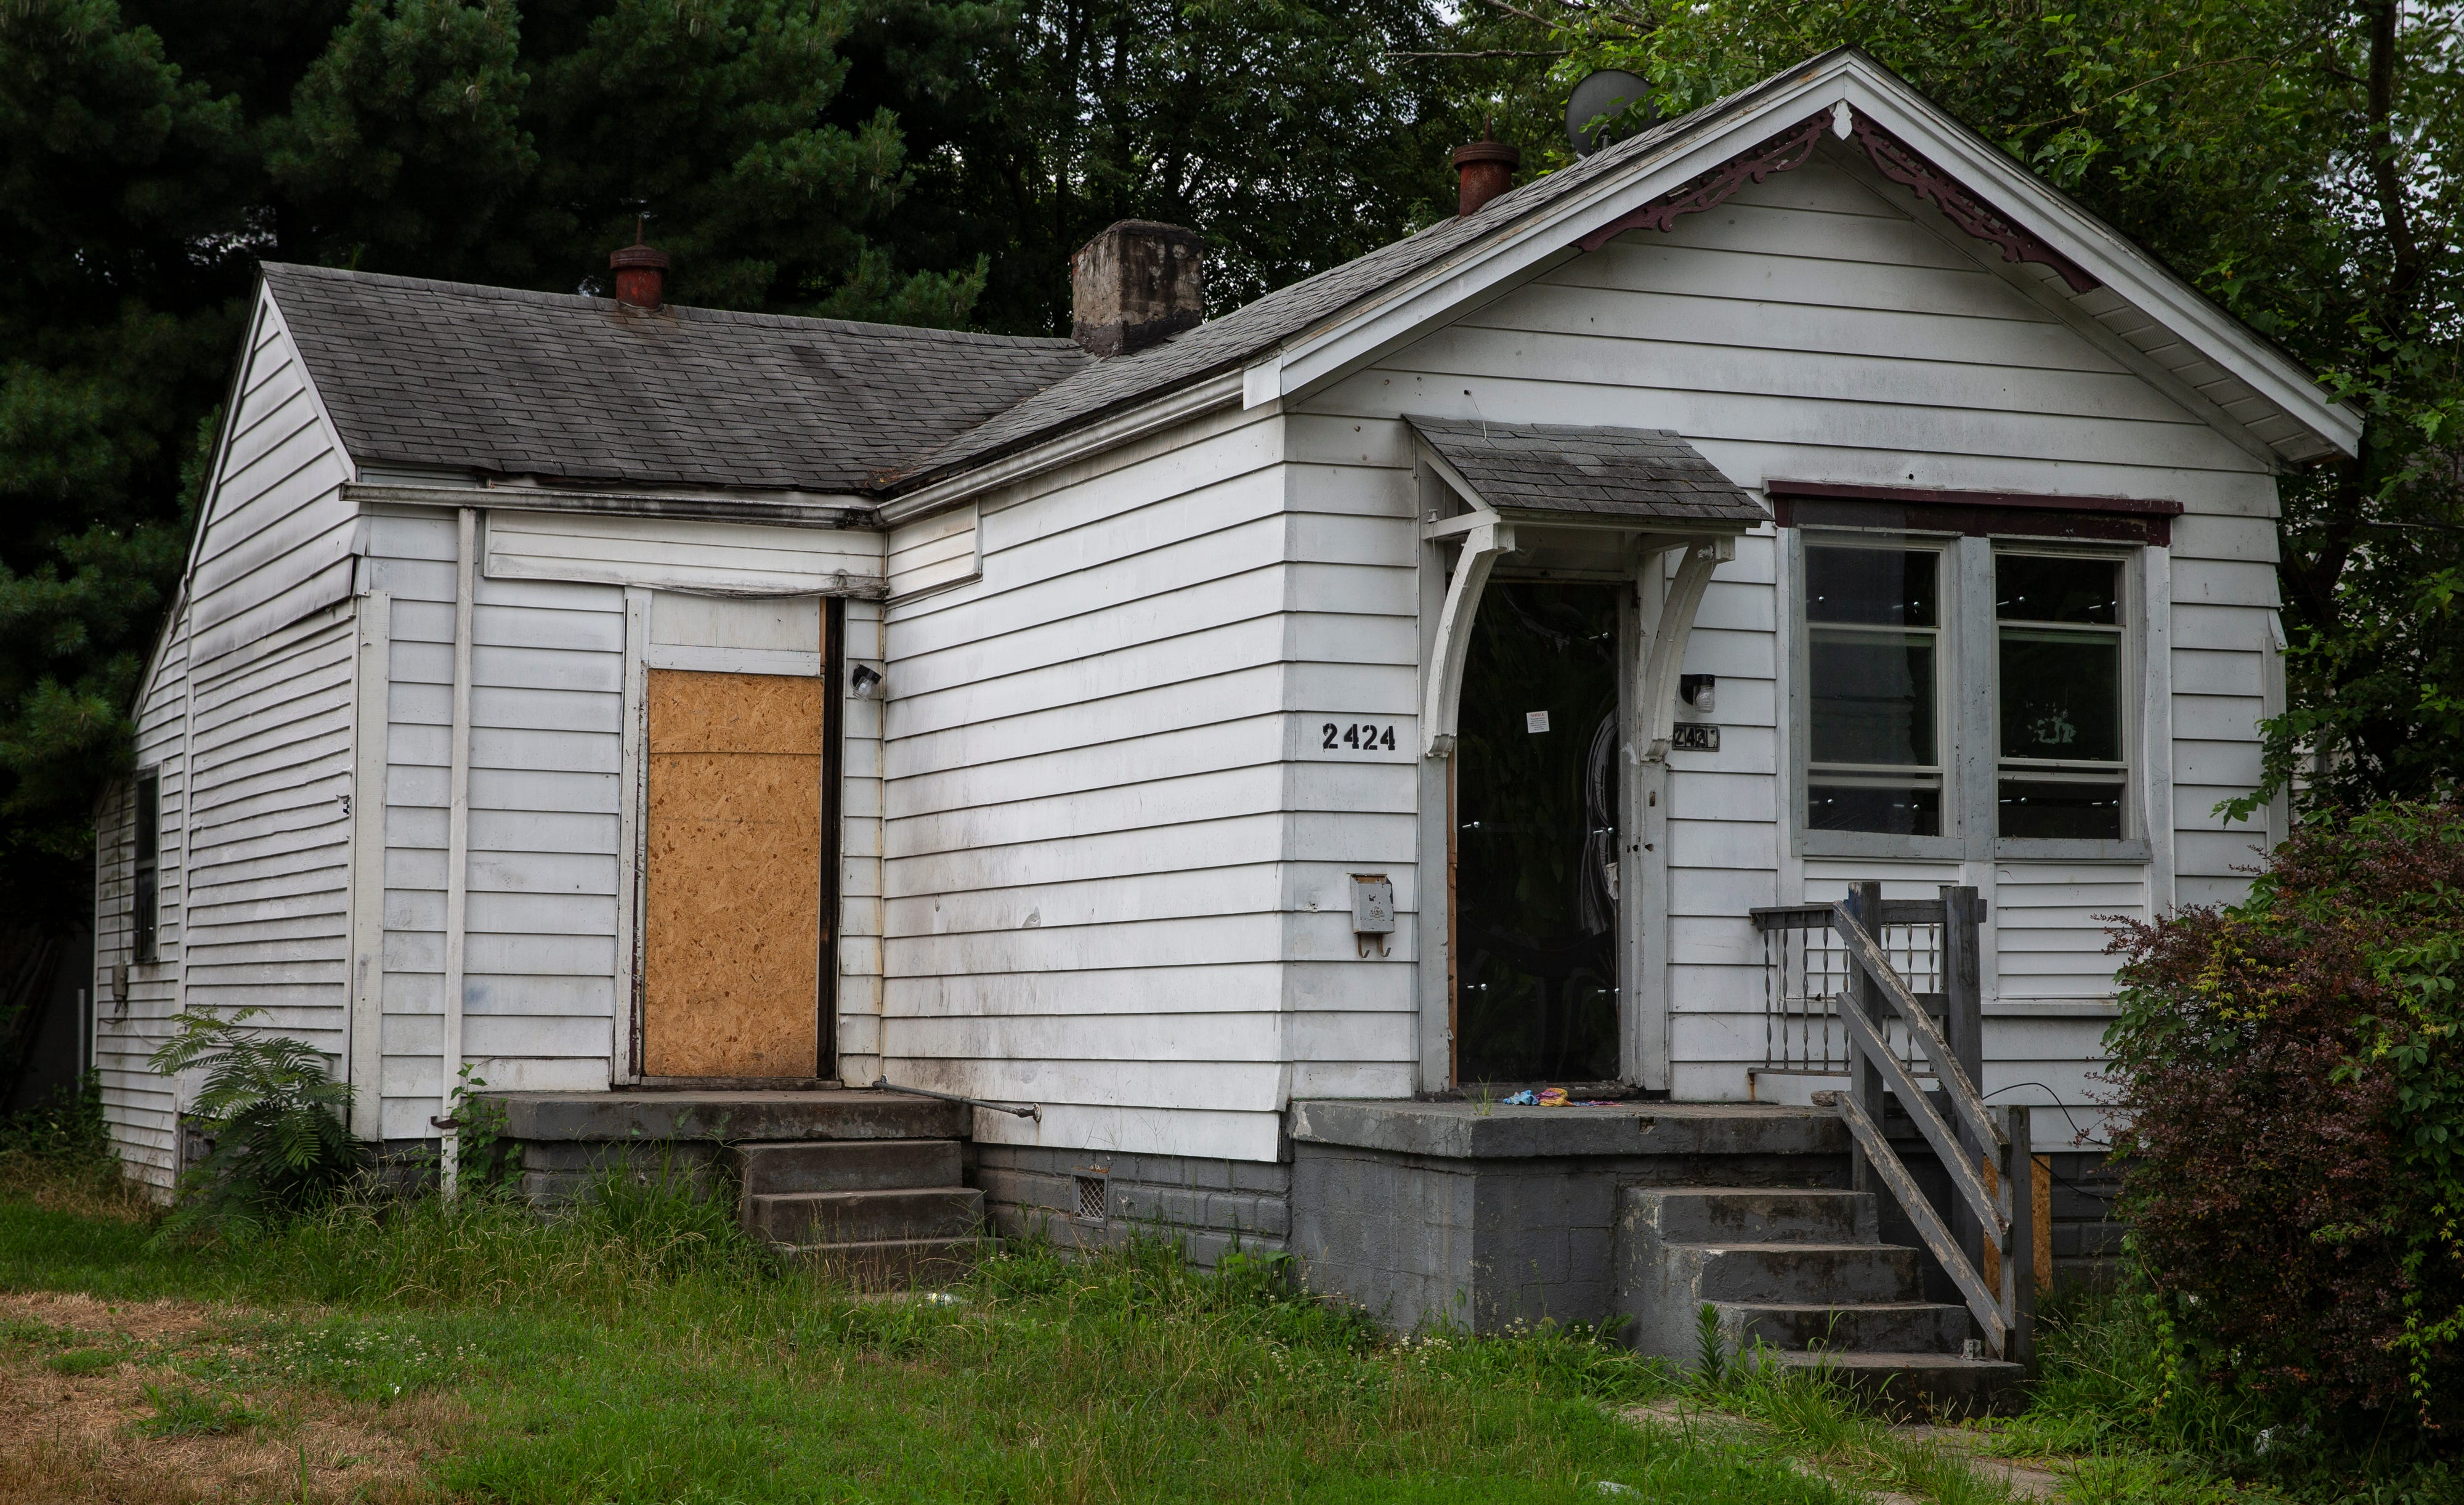 The house on Elliott Avenue in Louisville's Russell neighborhood, where Jamarcus Glover claims he was forced out by the city as part of a plan to gentrify the neighborhood. July 6, 2020